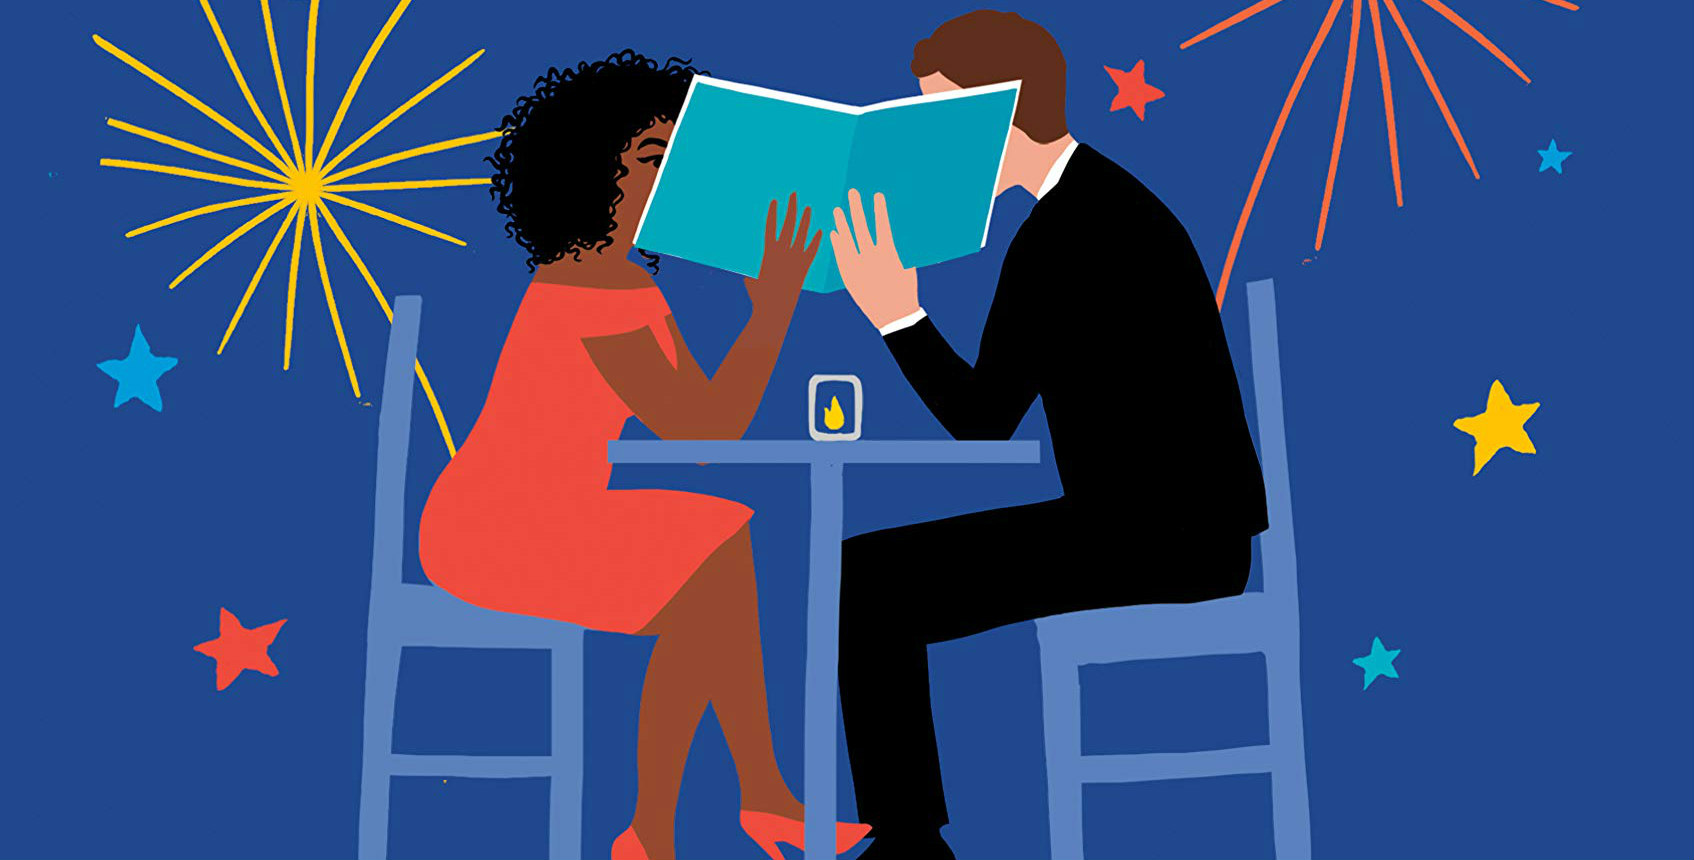 Party of Two, a blue book cover that features an illustration of a couple sitting together at a table